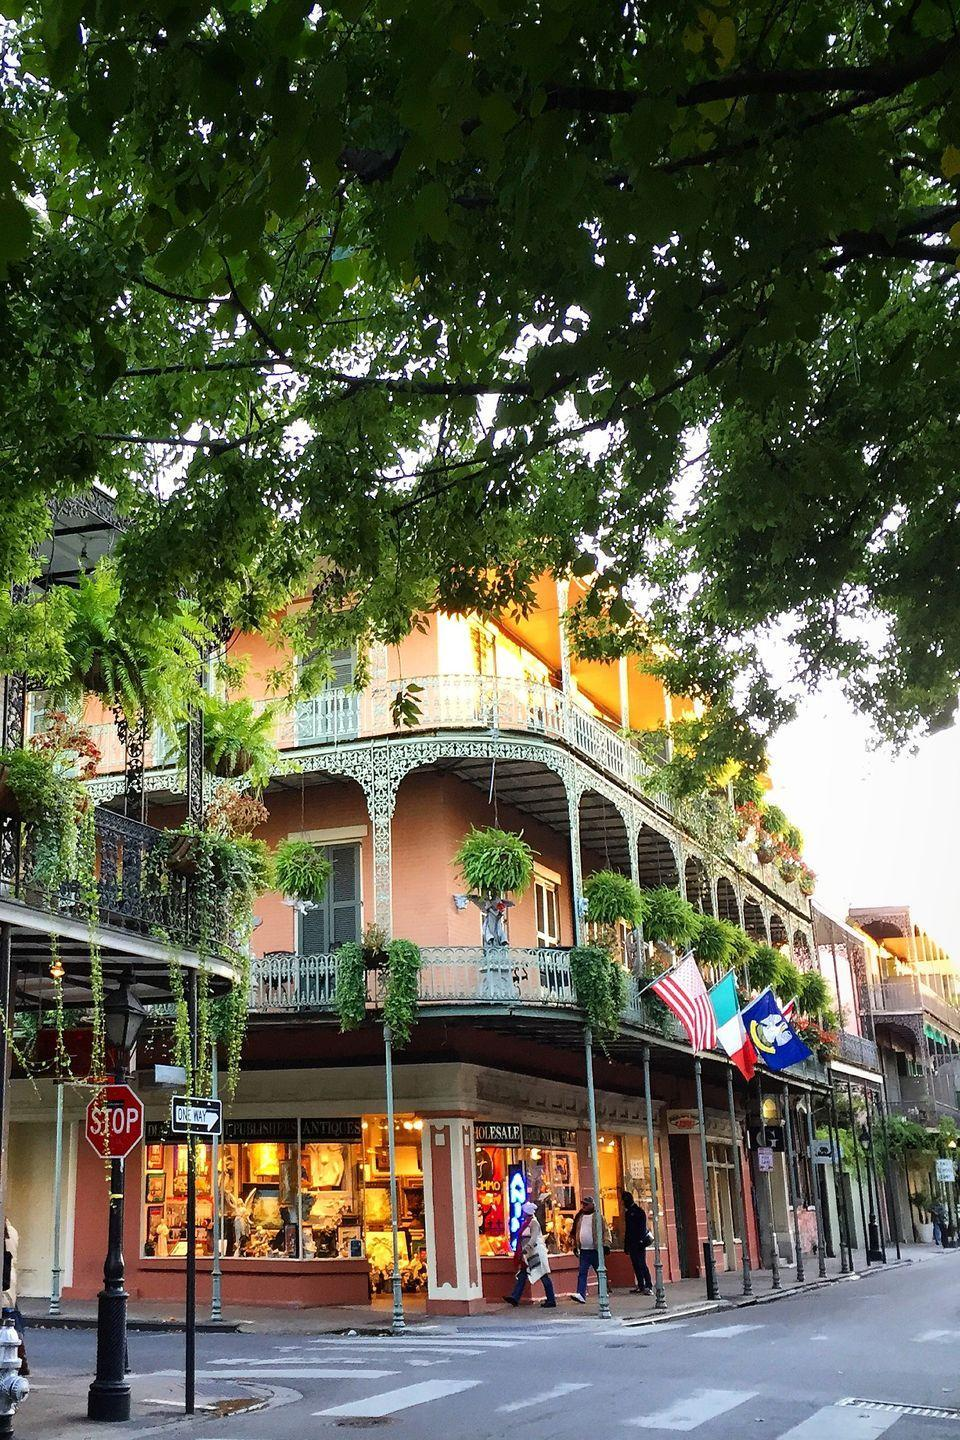 <p><strong>Where: </strong>French Quarter, New Orleans, Louisiana</p><p><strong>Why We Love It: </strong>The oldest neighborhood in New Orleans is home to some of the city's best architecture including those famous cast iron balconies and lush green courtyards.</p>